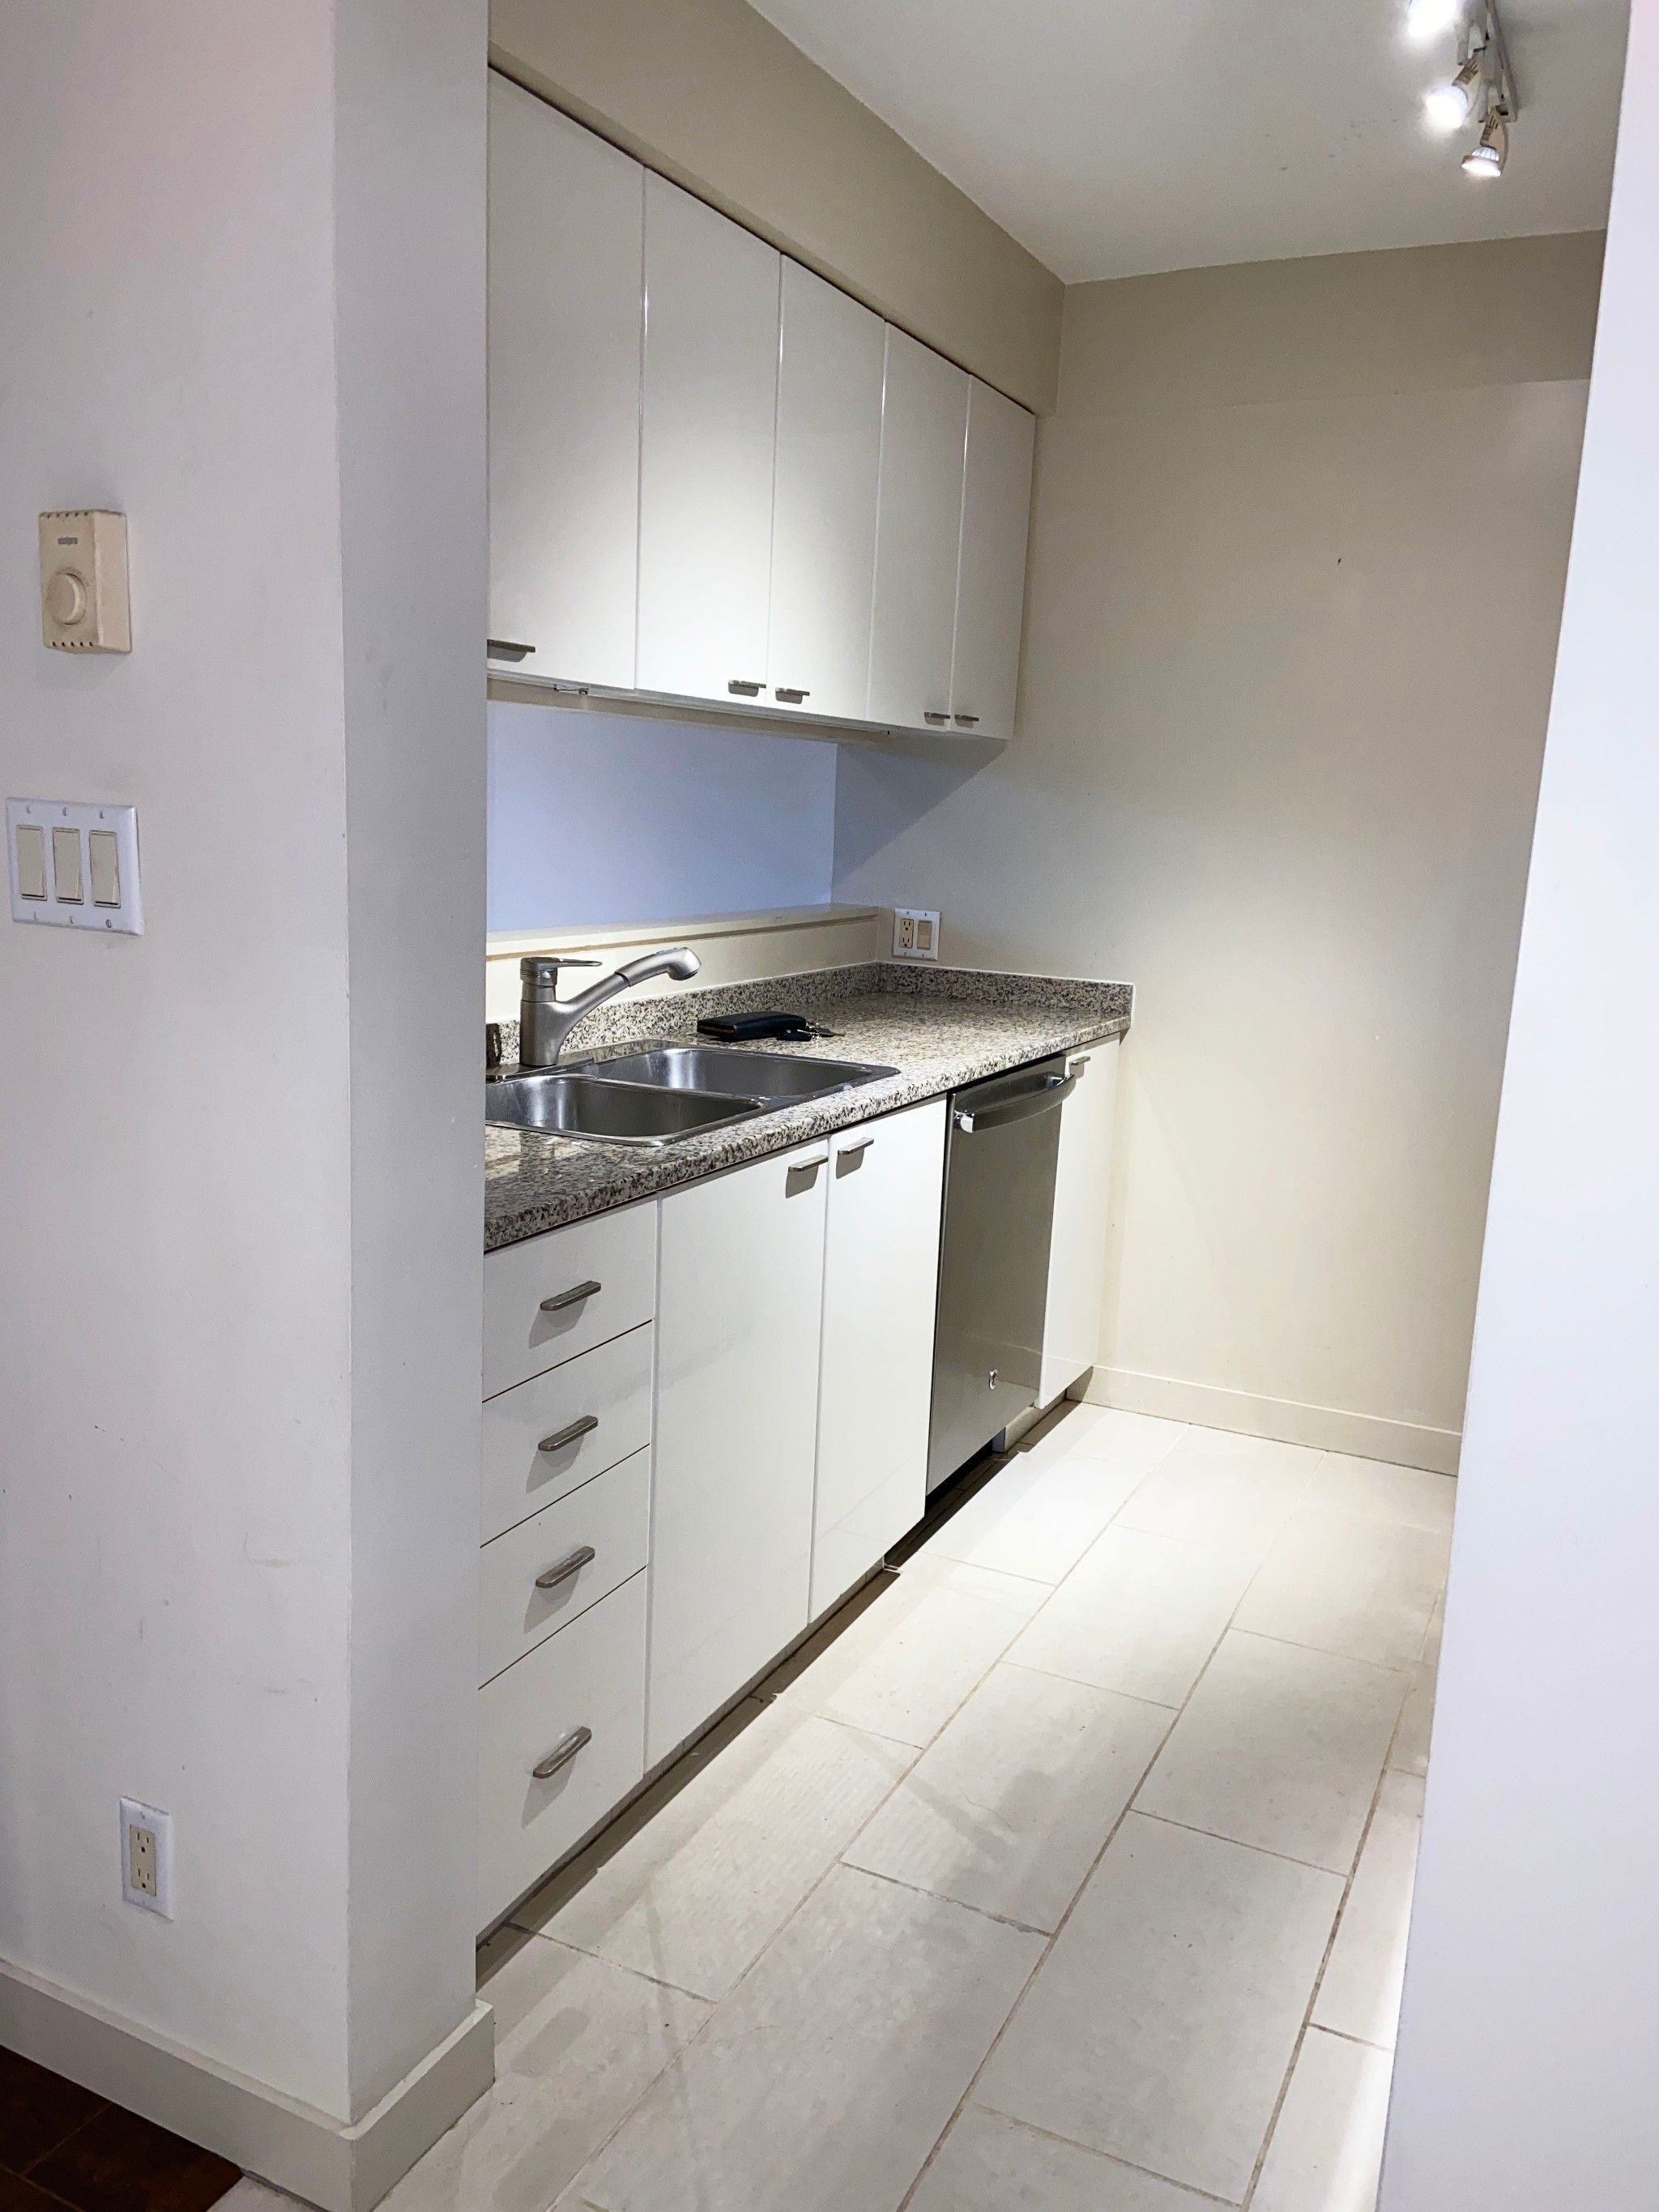 Photo 23: Photos: 1007-1200 W. Georgia St in Vancouver: Coal Harbour Condo for rent (Downtown Vancouver)